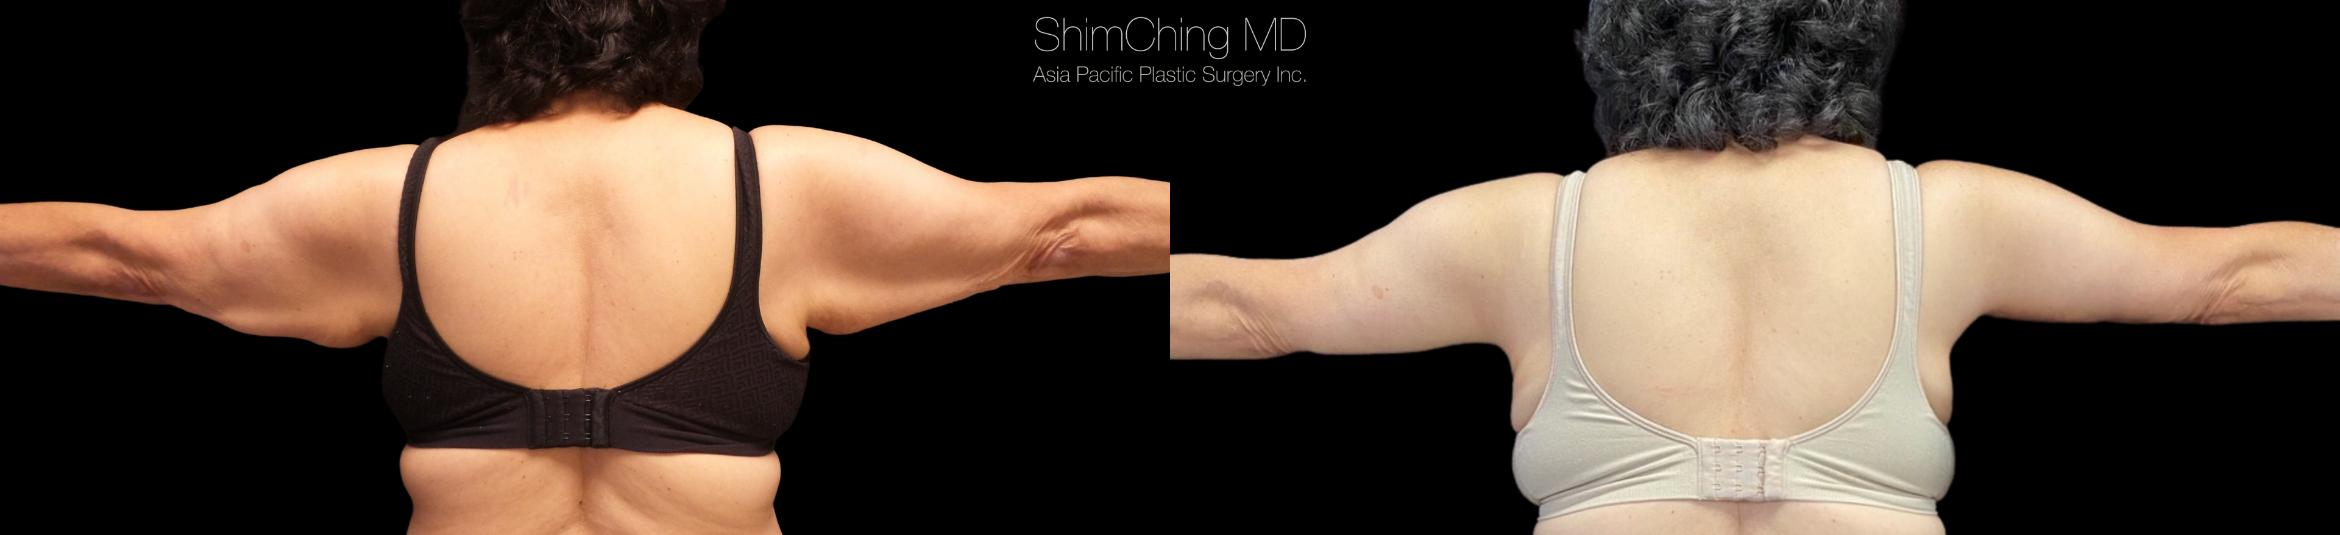 Arm Lift Case 317 Before & After Back | Honolulu, HI | Shim Ching, MD: Asia Pacific Plastic Surgery